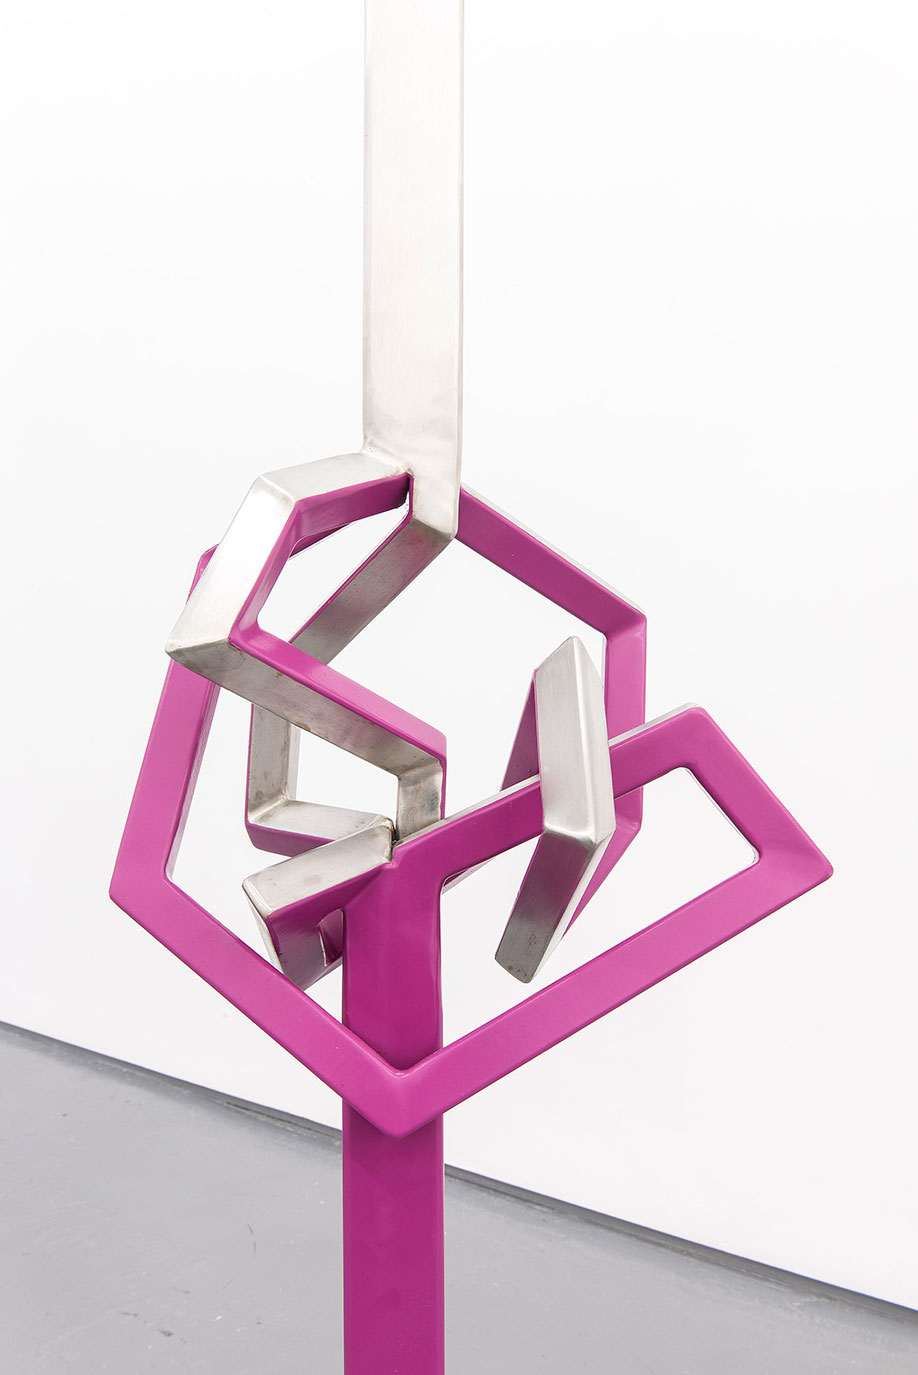 <b>Title: </b>Himalayan Balsam<br /><b>Year: </b>2013<br /><b>Medium: </b>Powder-coated stainless steel<br /><b>Size: </b>145 x 27 x 18 cm